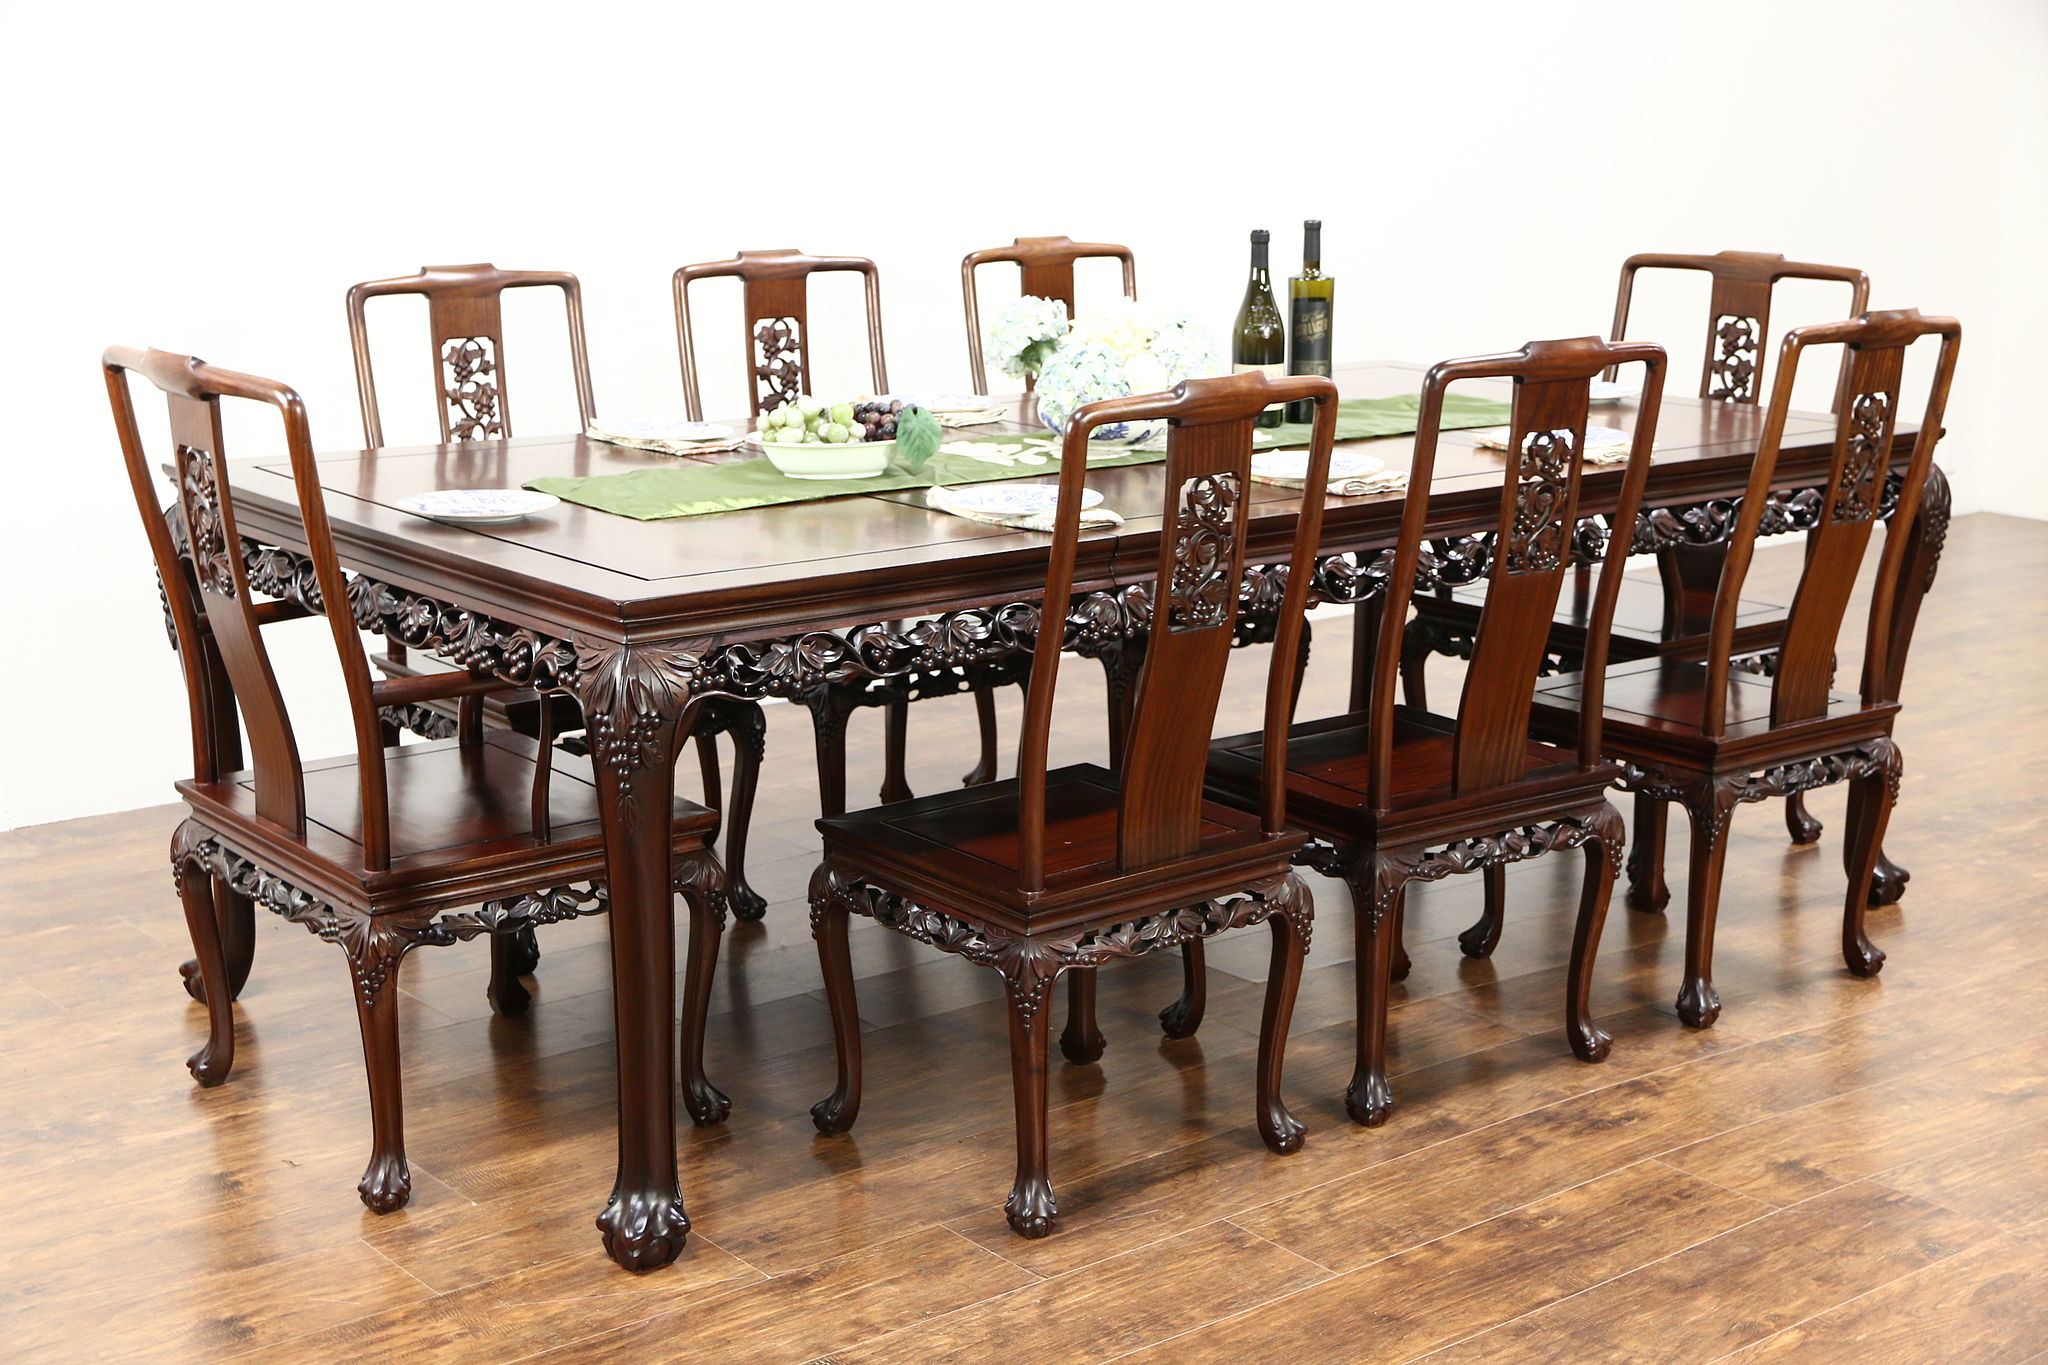 Sold Chinese Rosewood Vintage Dining Set Table 8